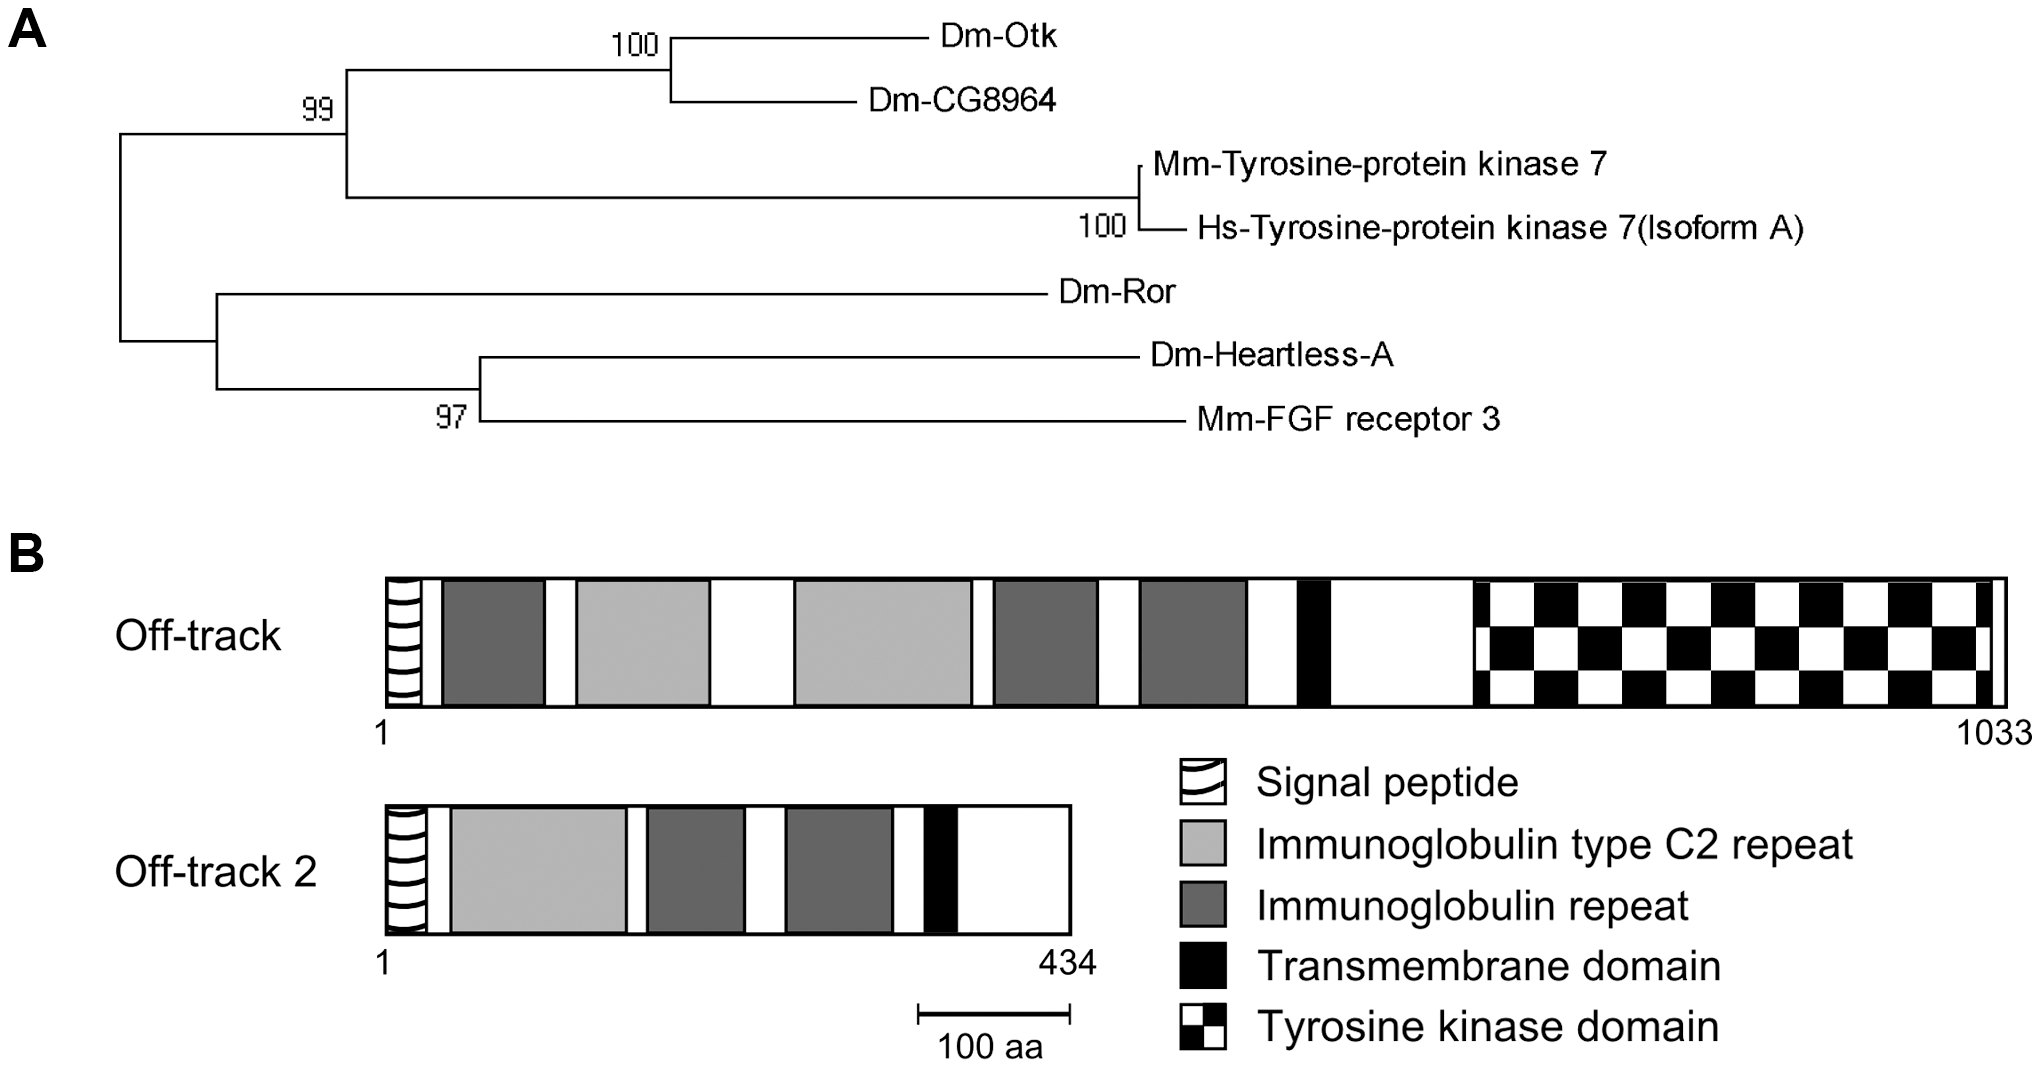 Off-track (Otk) and Off-track2 (CG8964, Otk2) are paralogs evolved by gene duplication.